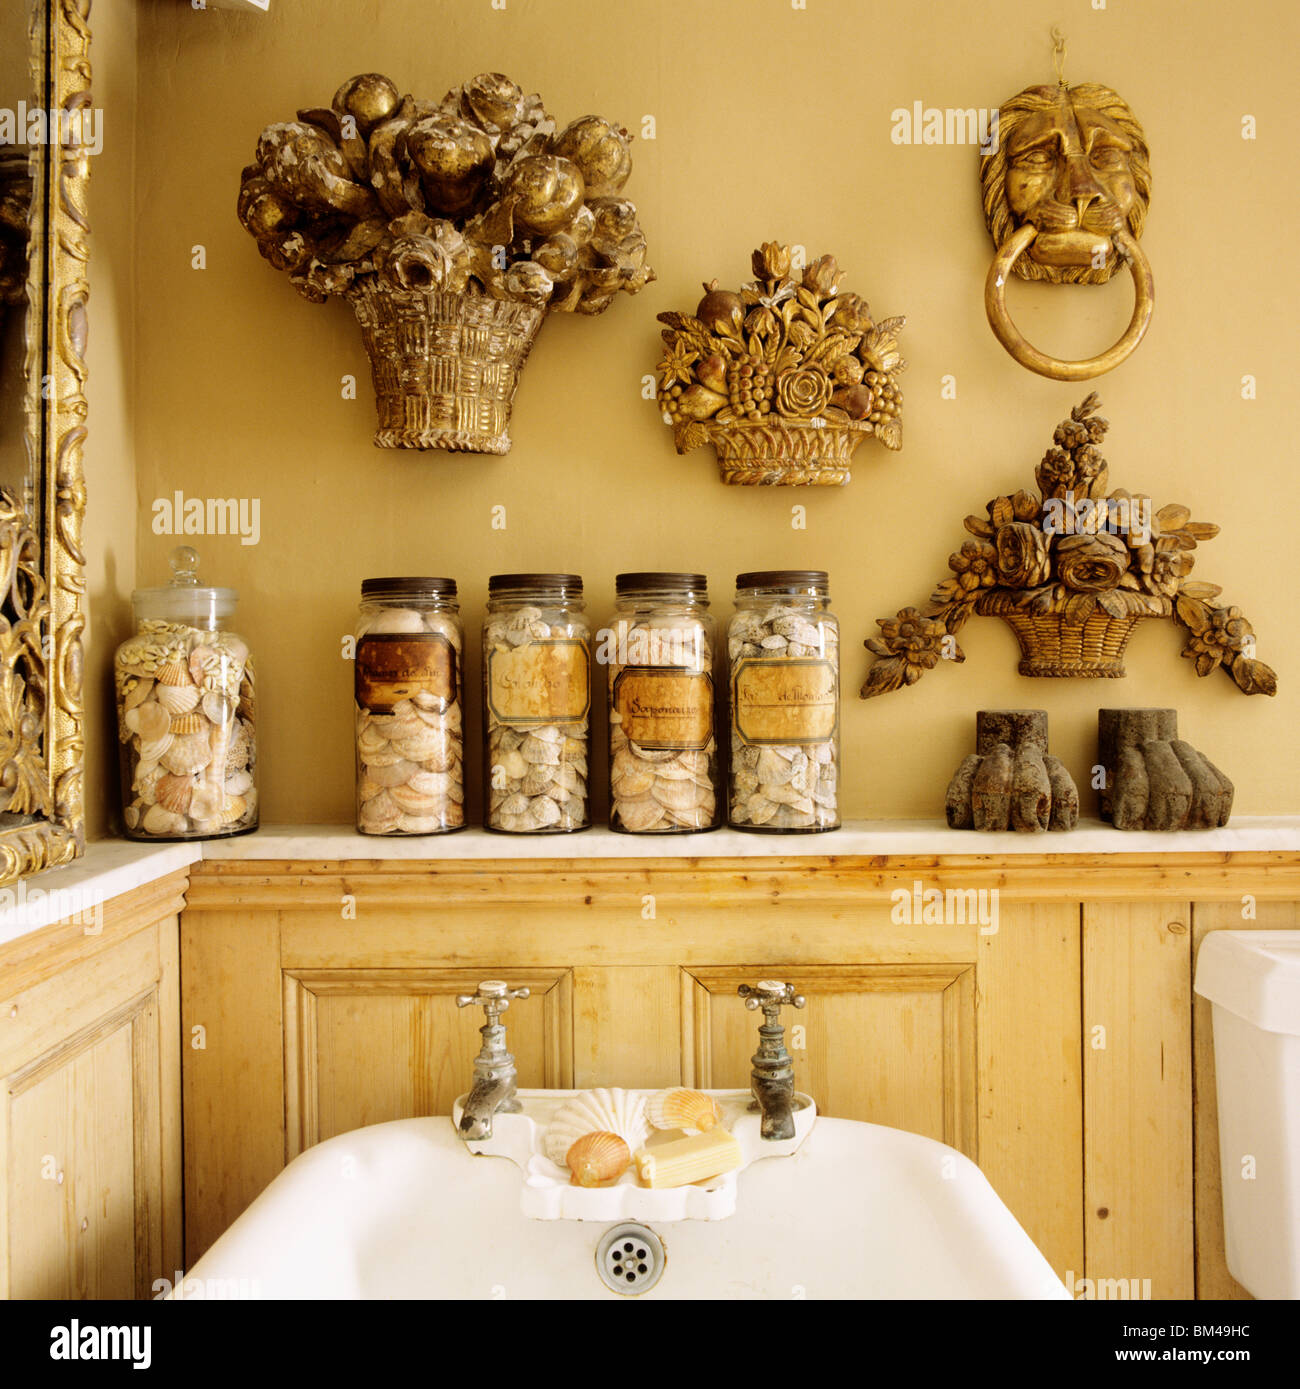 Wall Hangings Stock Photos & Wall Hangings Stock Images - Alamy